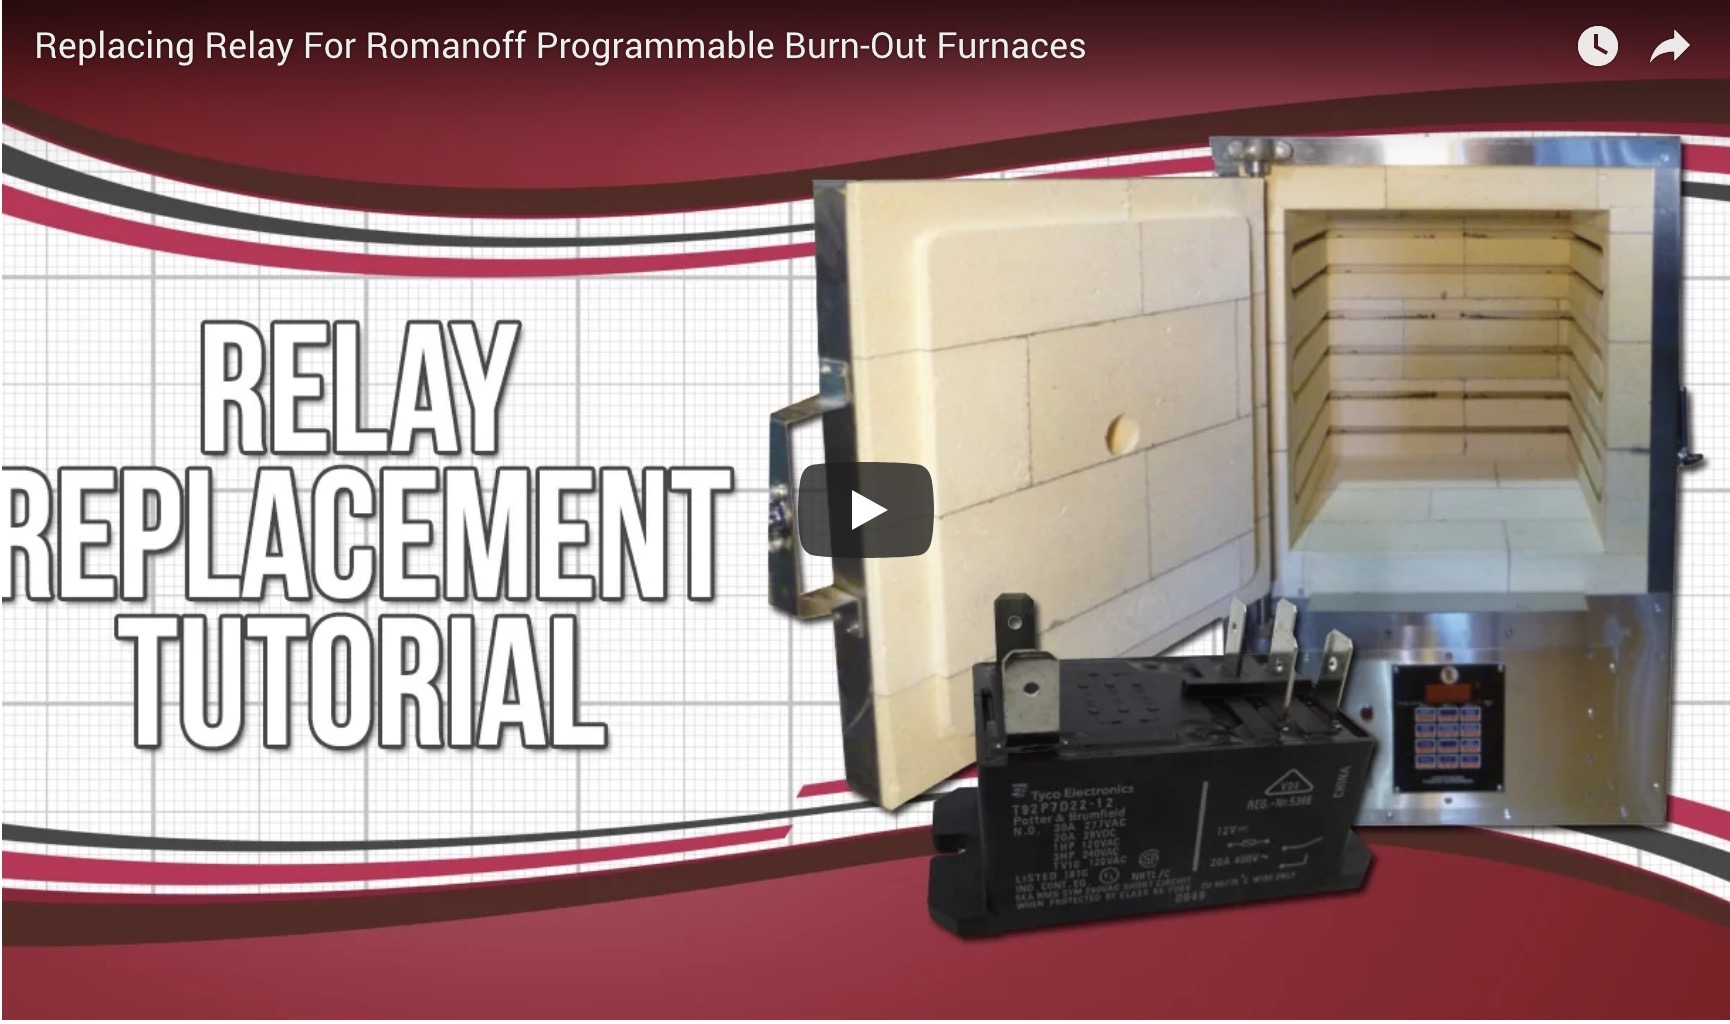 Replacing Relay For Romanoff Programmable Burn-Out Furnaces